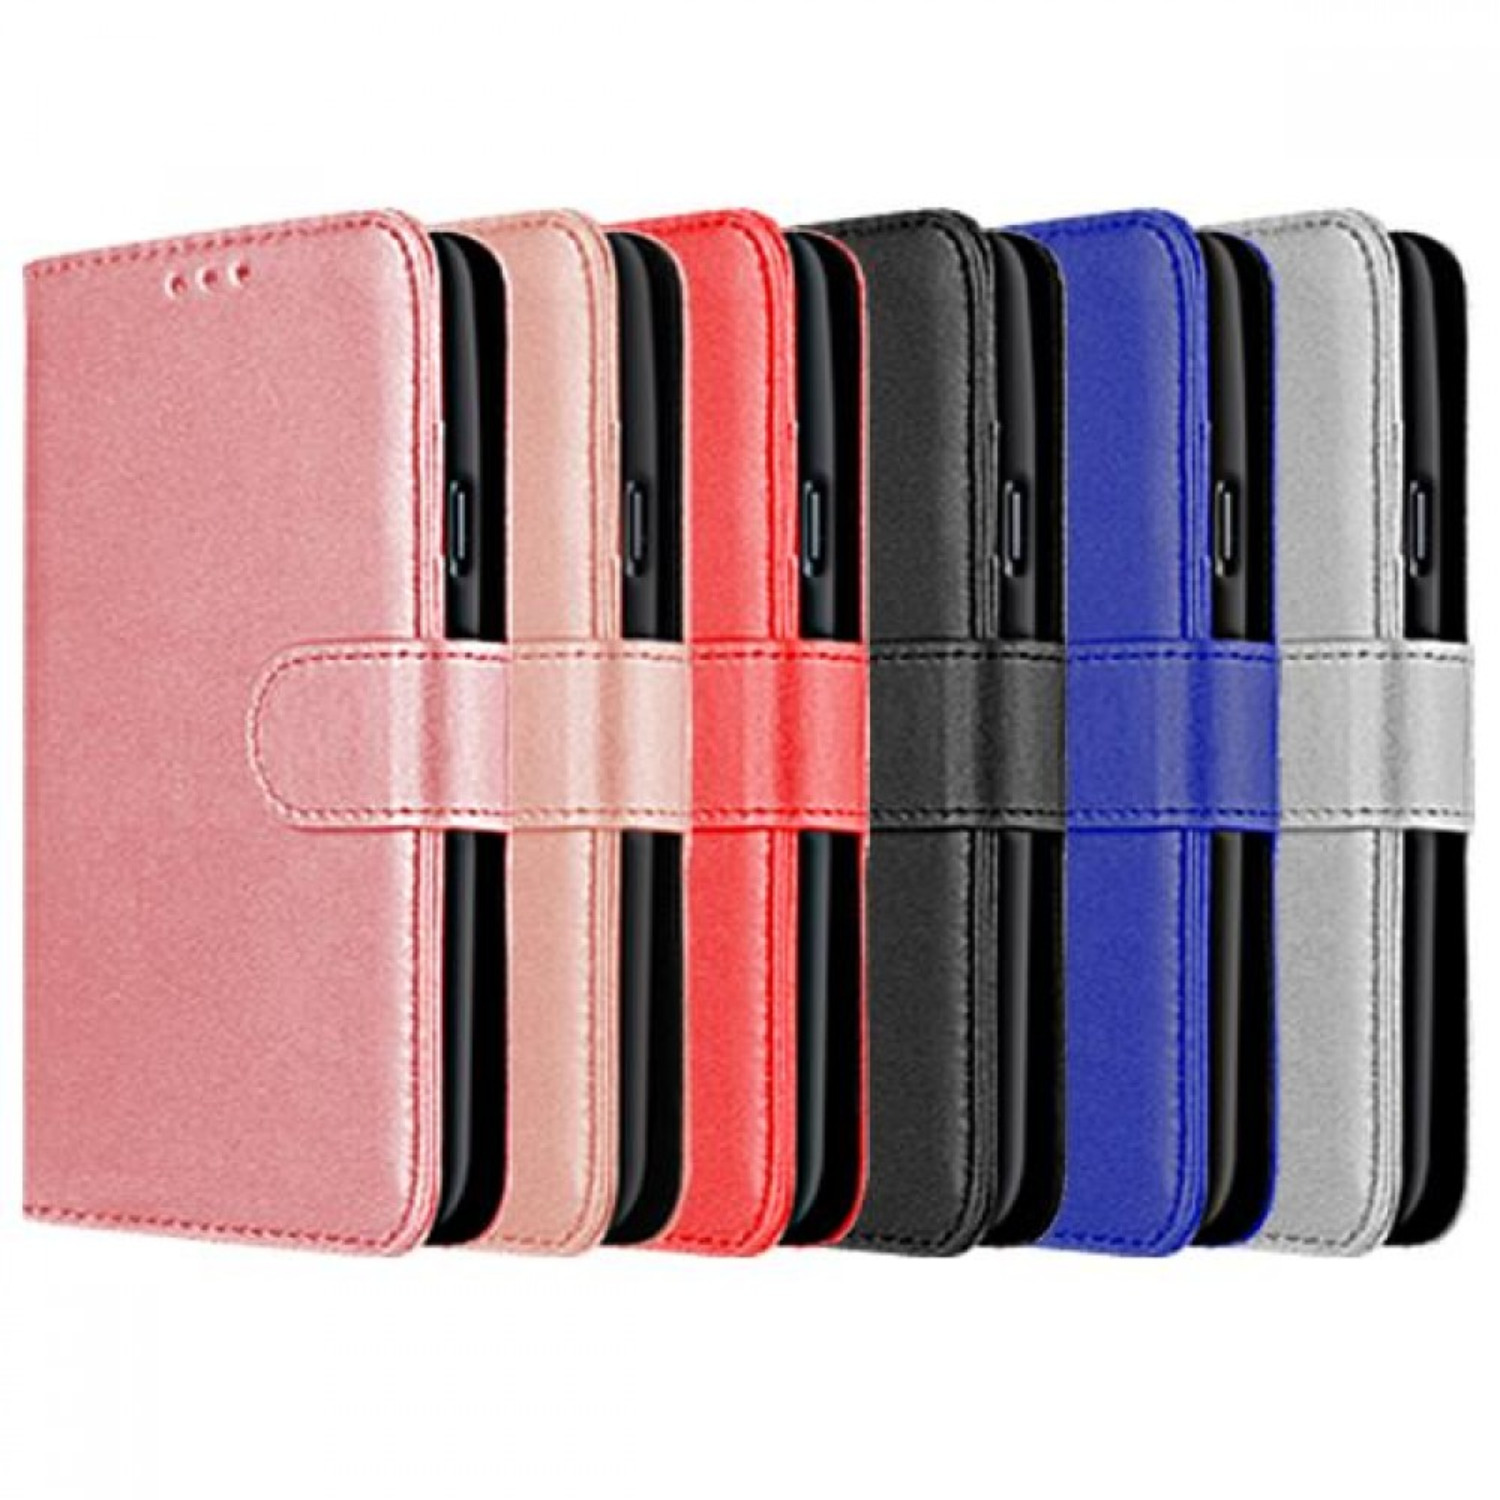 Samsung Galaxy S21 Compatible Book Case With Wallet Slot